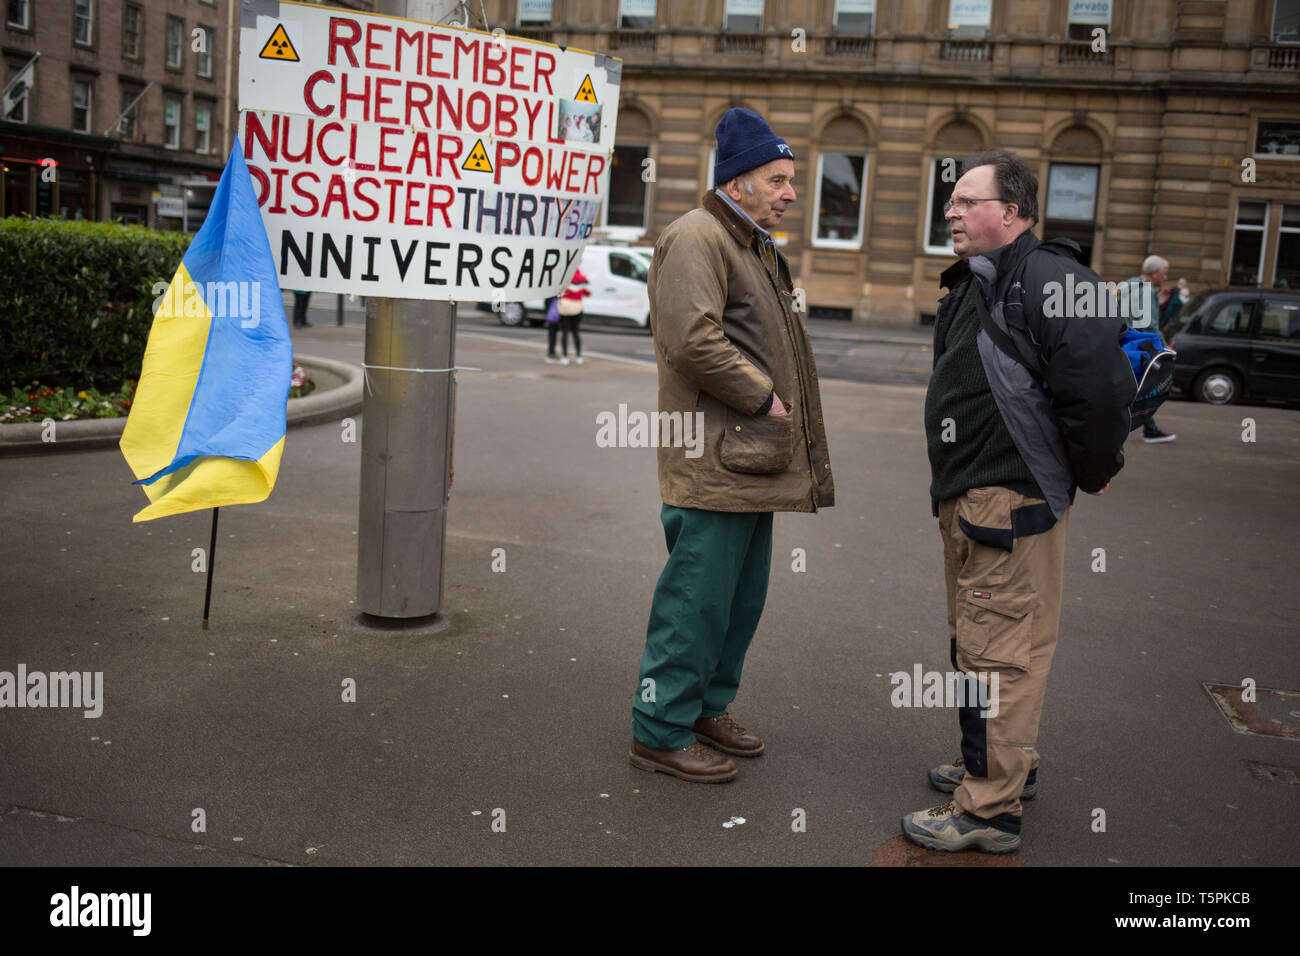 Glasgow, Scotland, 26th April 2019. 78-years old Jim Gillies (on left) stands in George Square with his placard remembering the 1986 Chernobyl nuclear disaster in the Ukraine. Today marks the 33rd anniversary of the disaster and Jim Gillies has marked the disaster day, by standing with his placard in the Square ever year since, as well as donating more than £20,000 GBP to a hospital in Ukraine, a country he has now visited approximately 20 times. Credit: jeremy sutton-hibbert/Alamy Live News - Stock Image